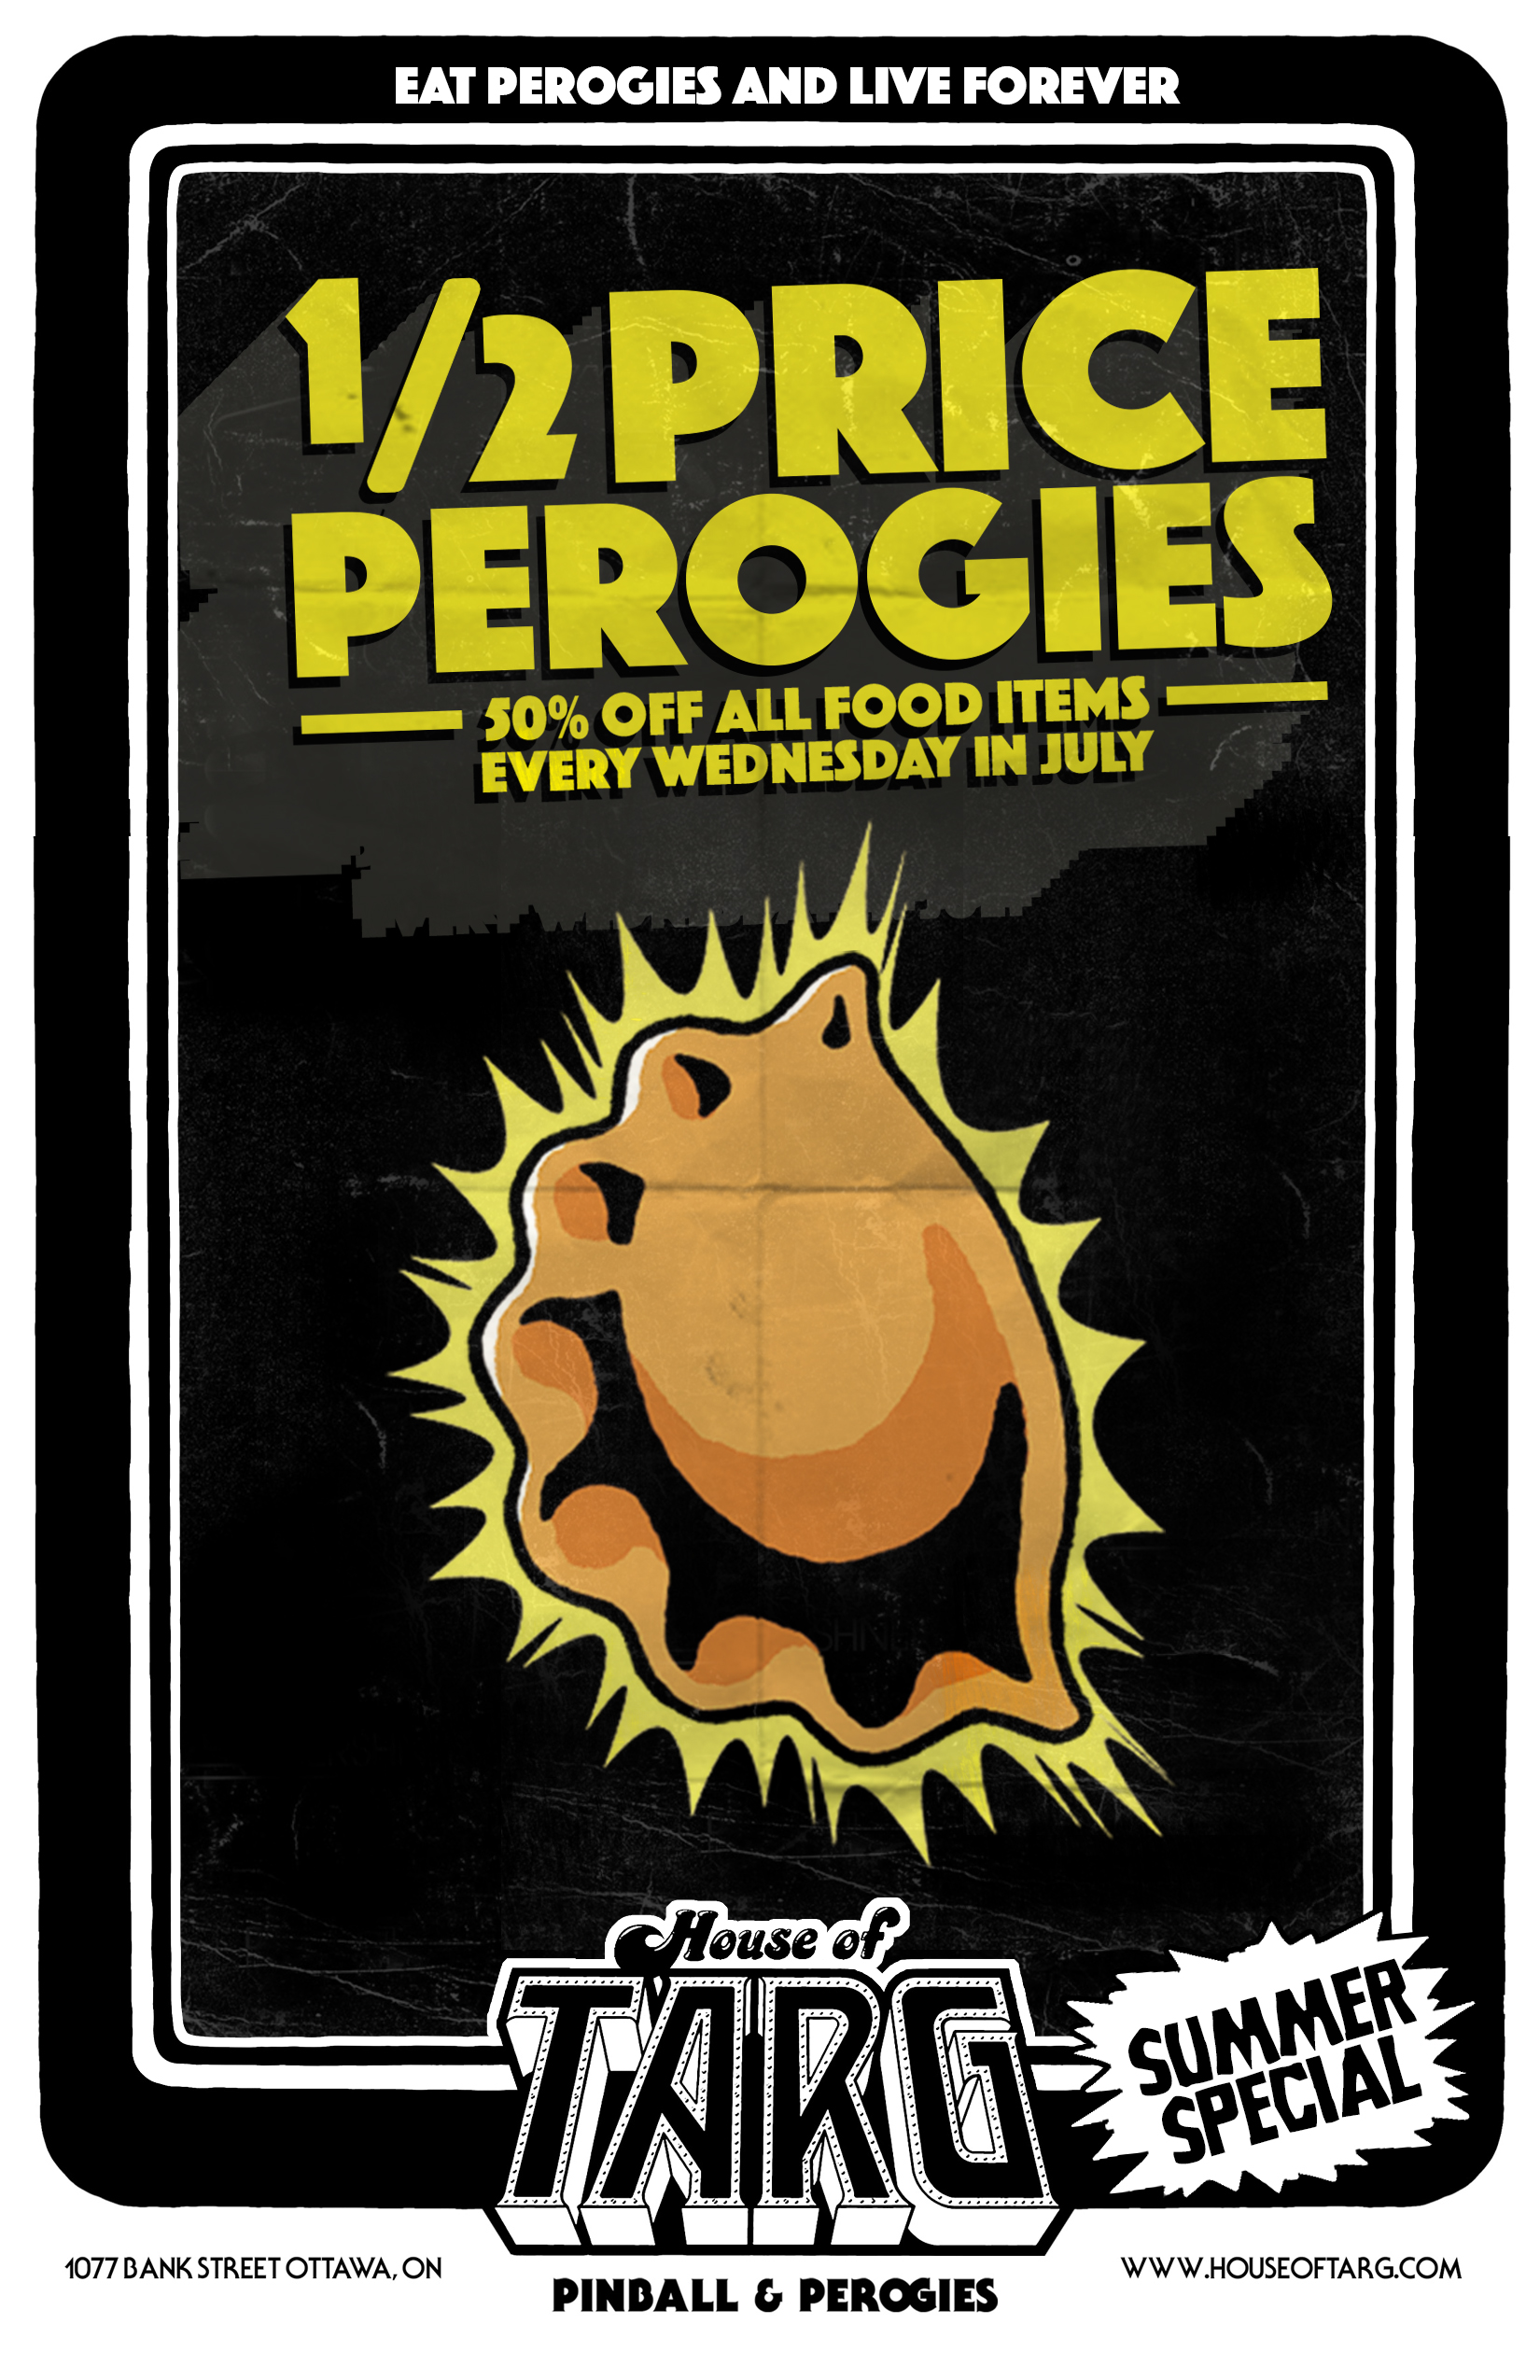 WEDNESDAY PEROGI DEALS - 5pm - Close 50% Off All Food on our Menu - Every Wed THis July